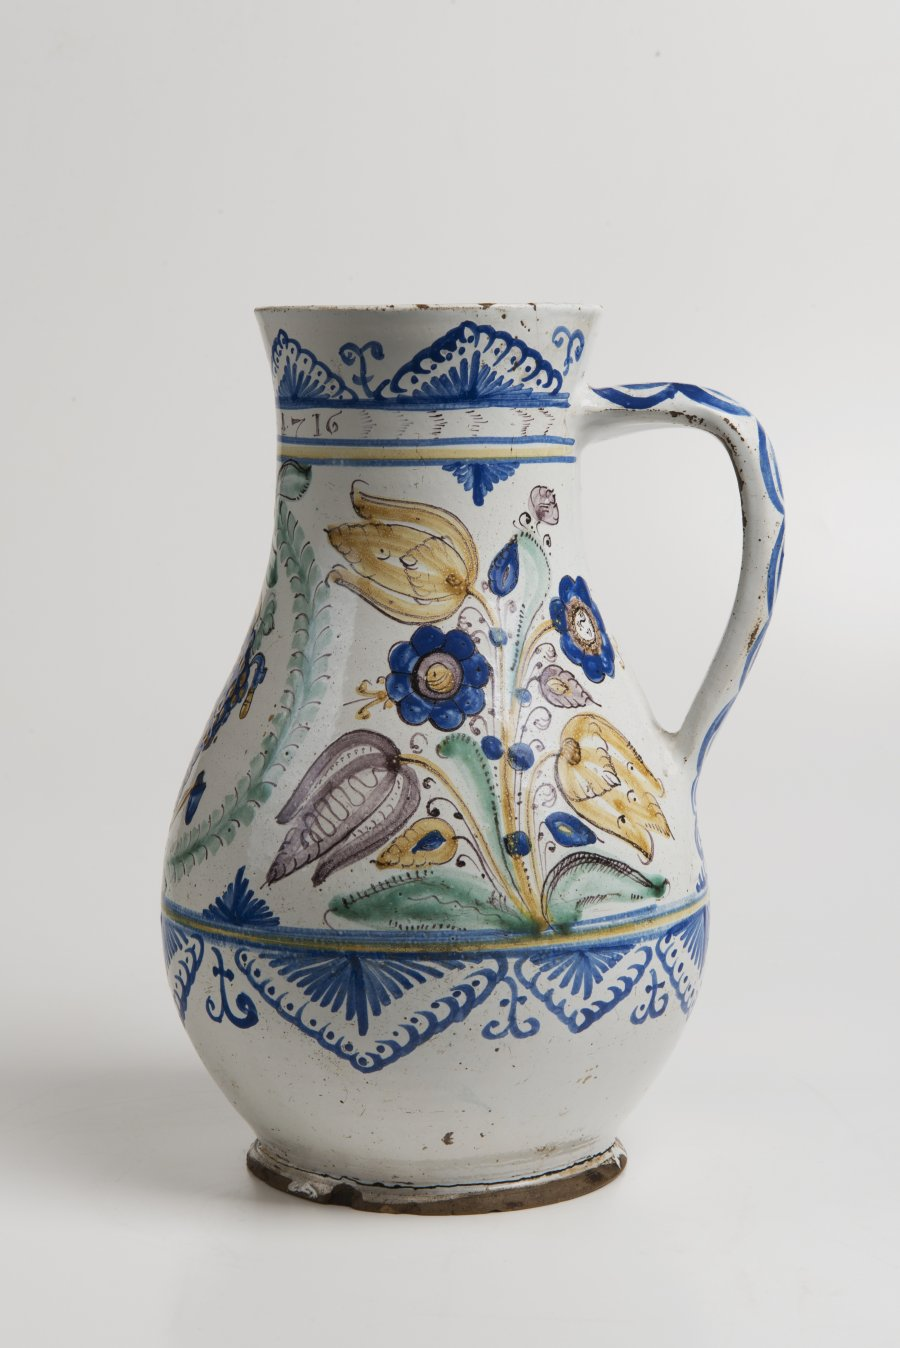 A HABÁN PITCHER OF THE VINTNERS GUILD